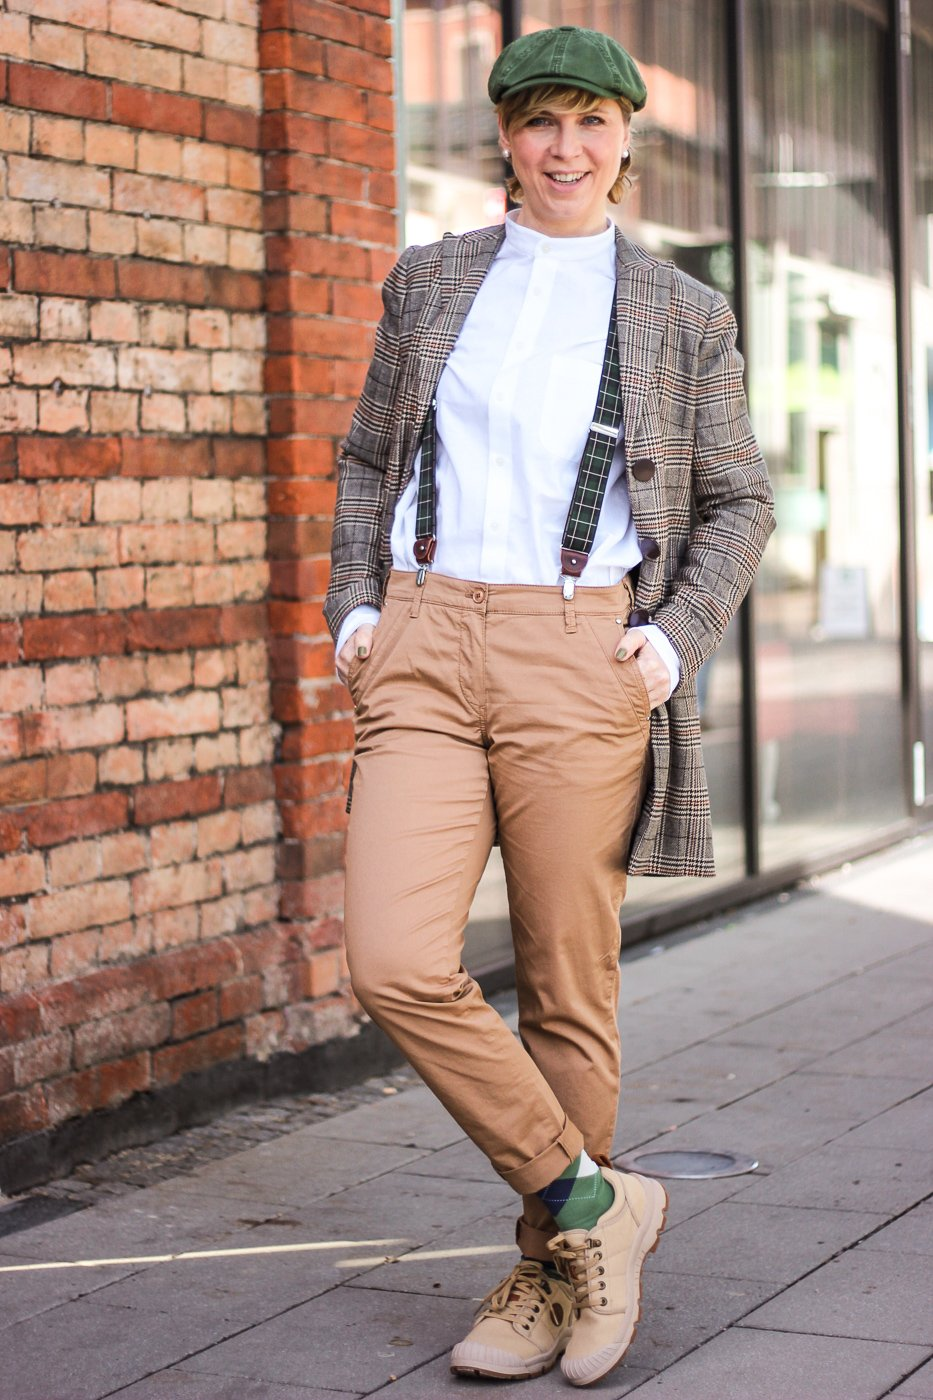 conny doll lifestyle: Dandy Style mit Karoblazer, Outfitidee